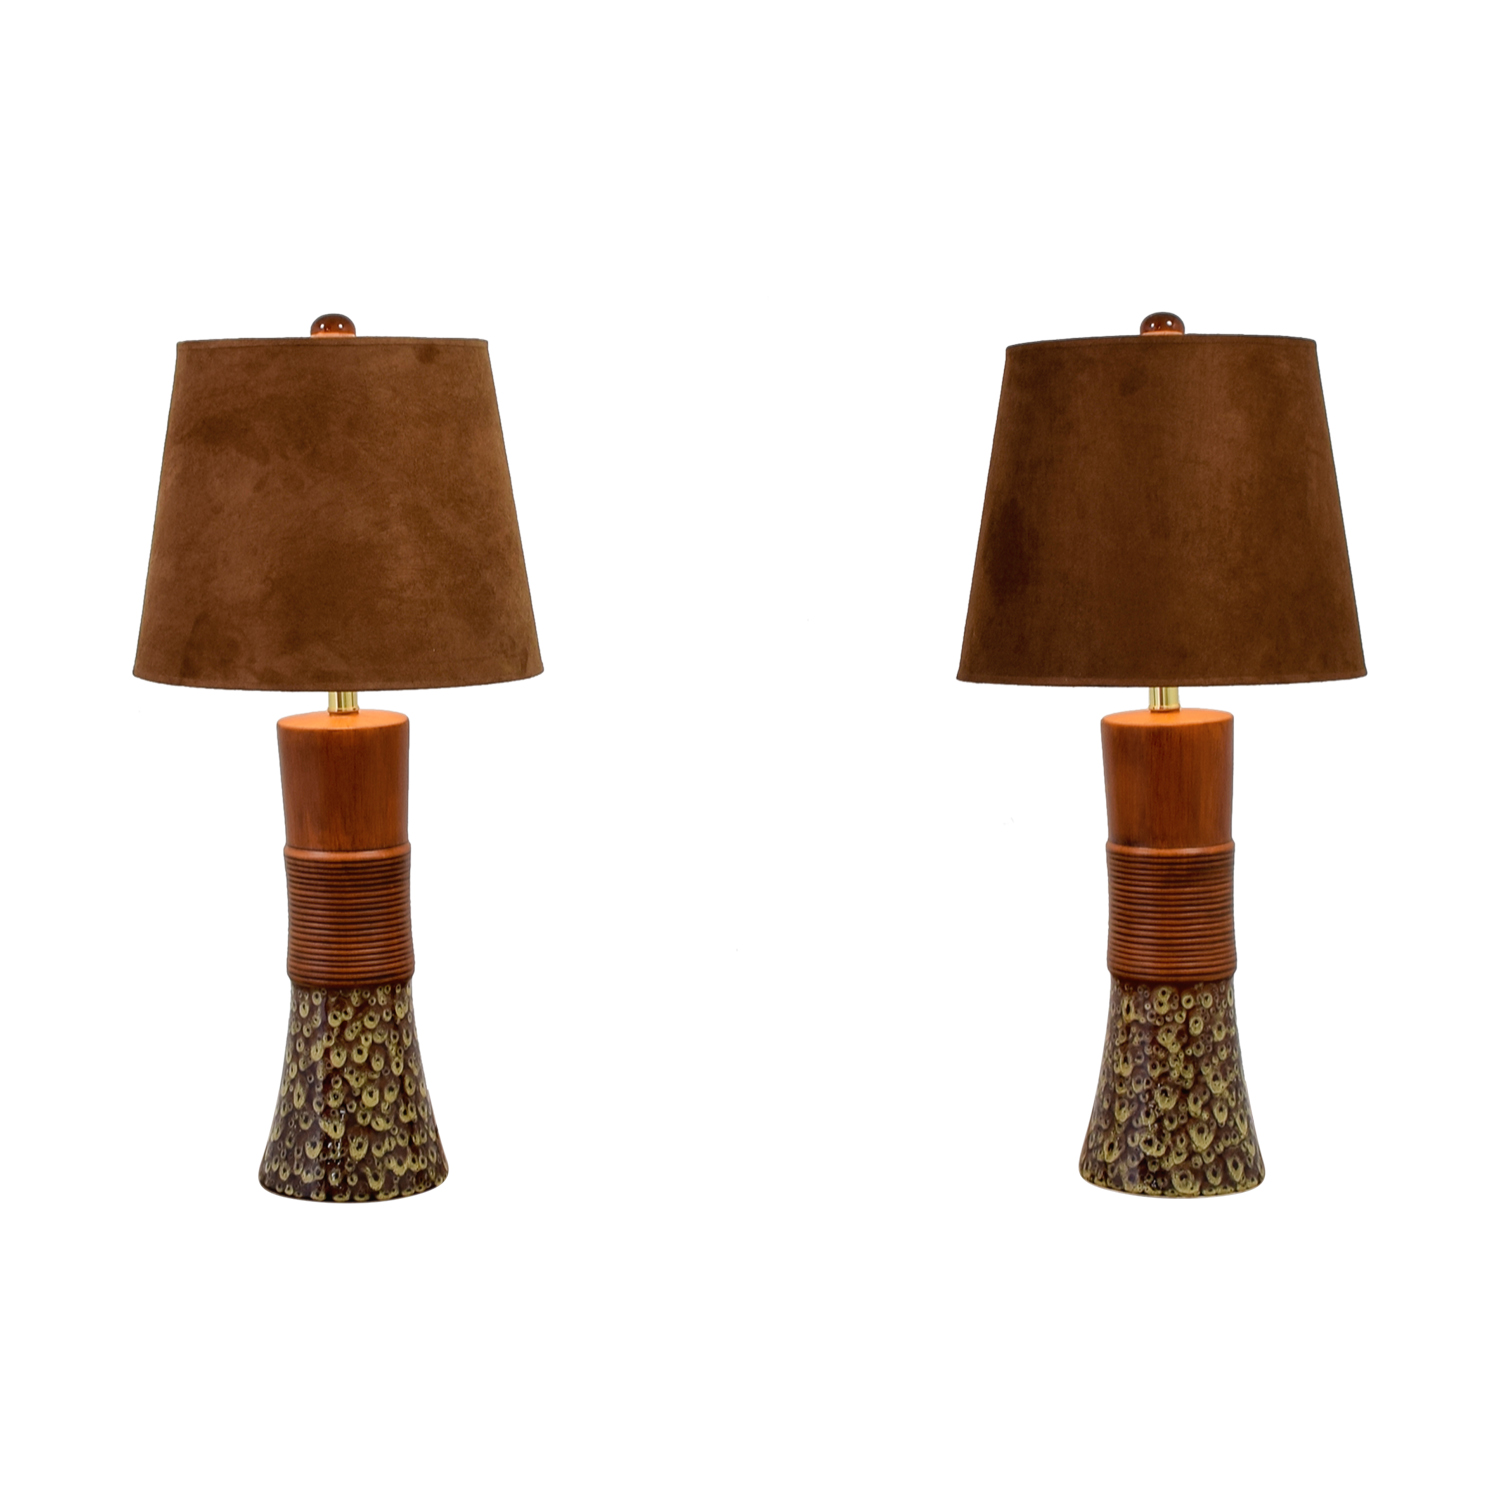 Ashley Furniture Ashley Furniture Ceramic Table Lamps nyc